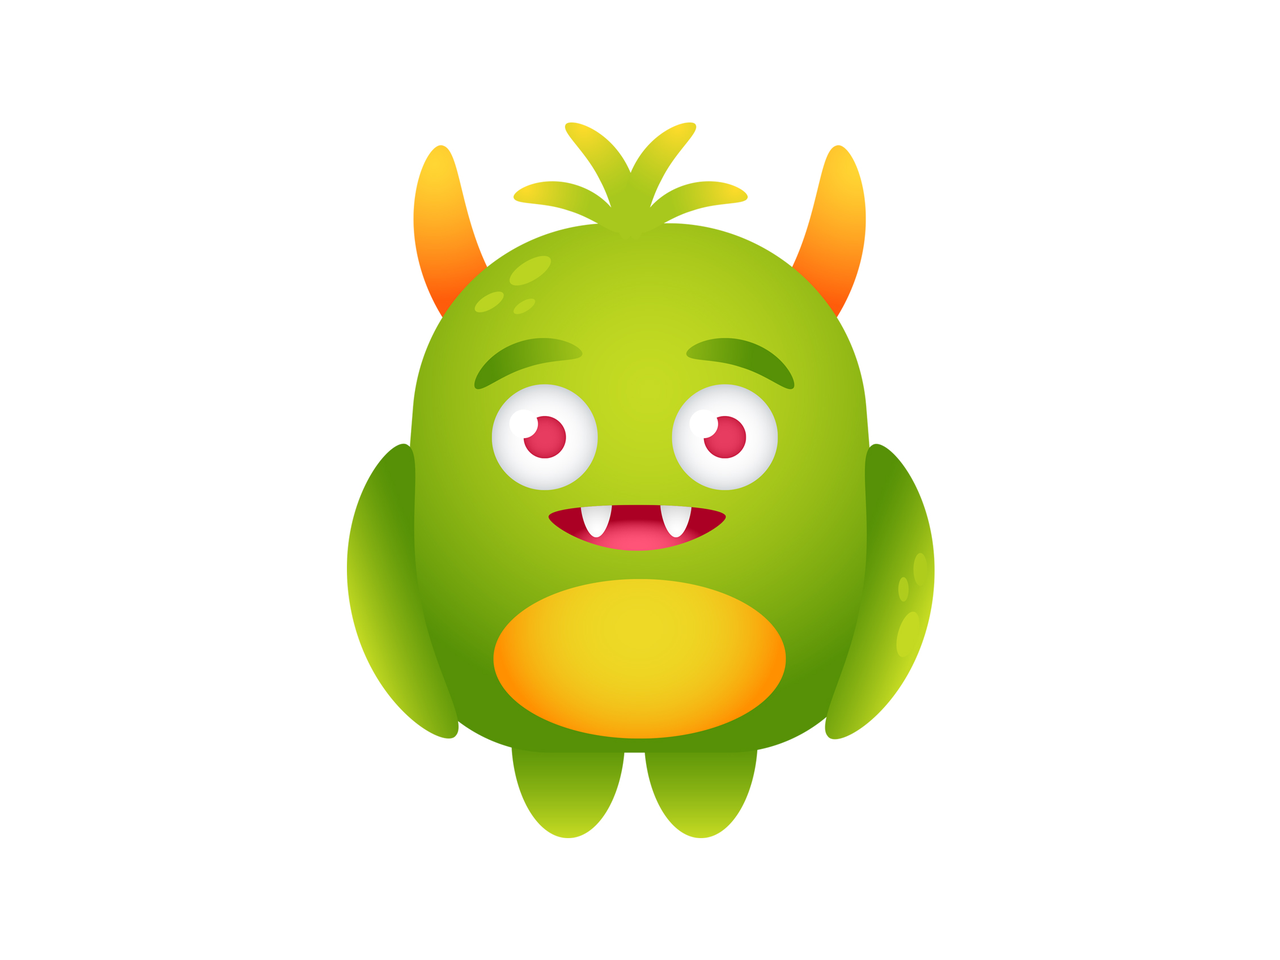 Vector monster illustrator. How to create a